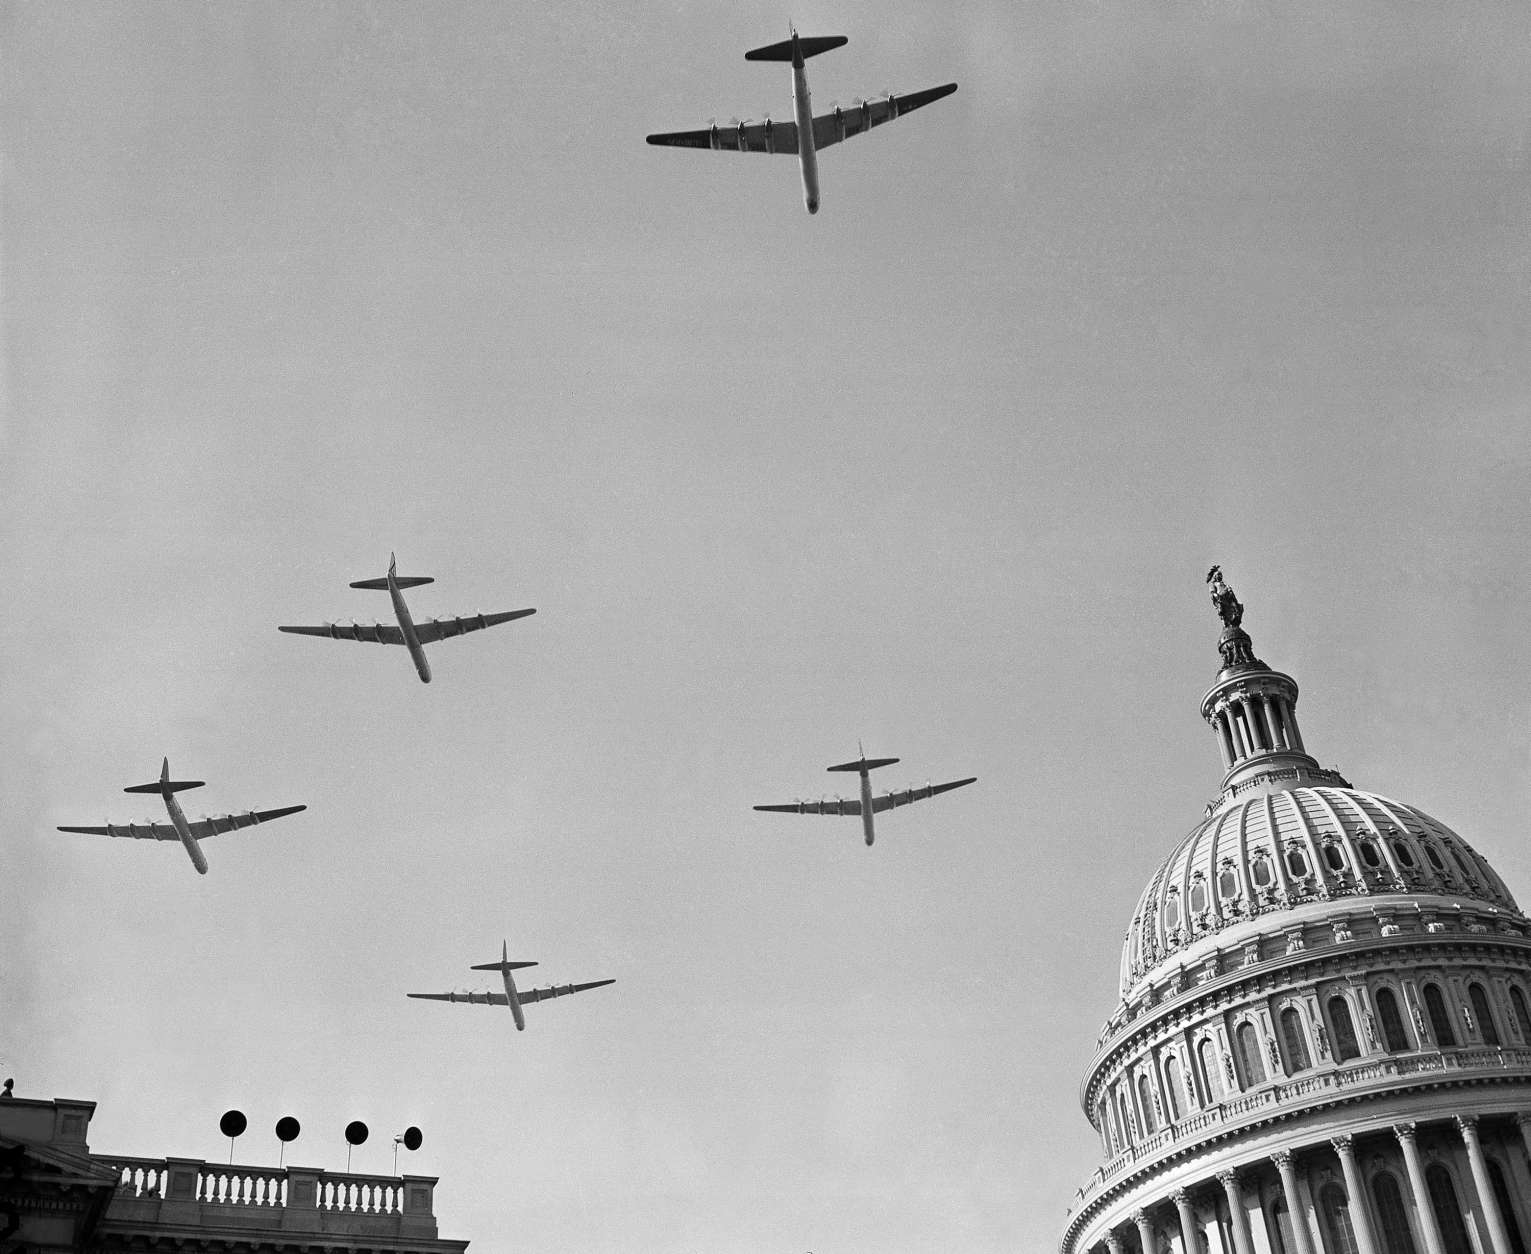 Giant B-36 planes of the U.S. Air Force join the inaugural parade in a flight over the Capitol dome in Washington, Jan. 20, 1949. (AP Photo)